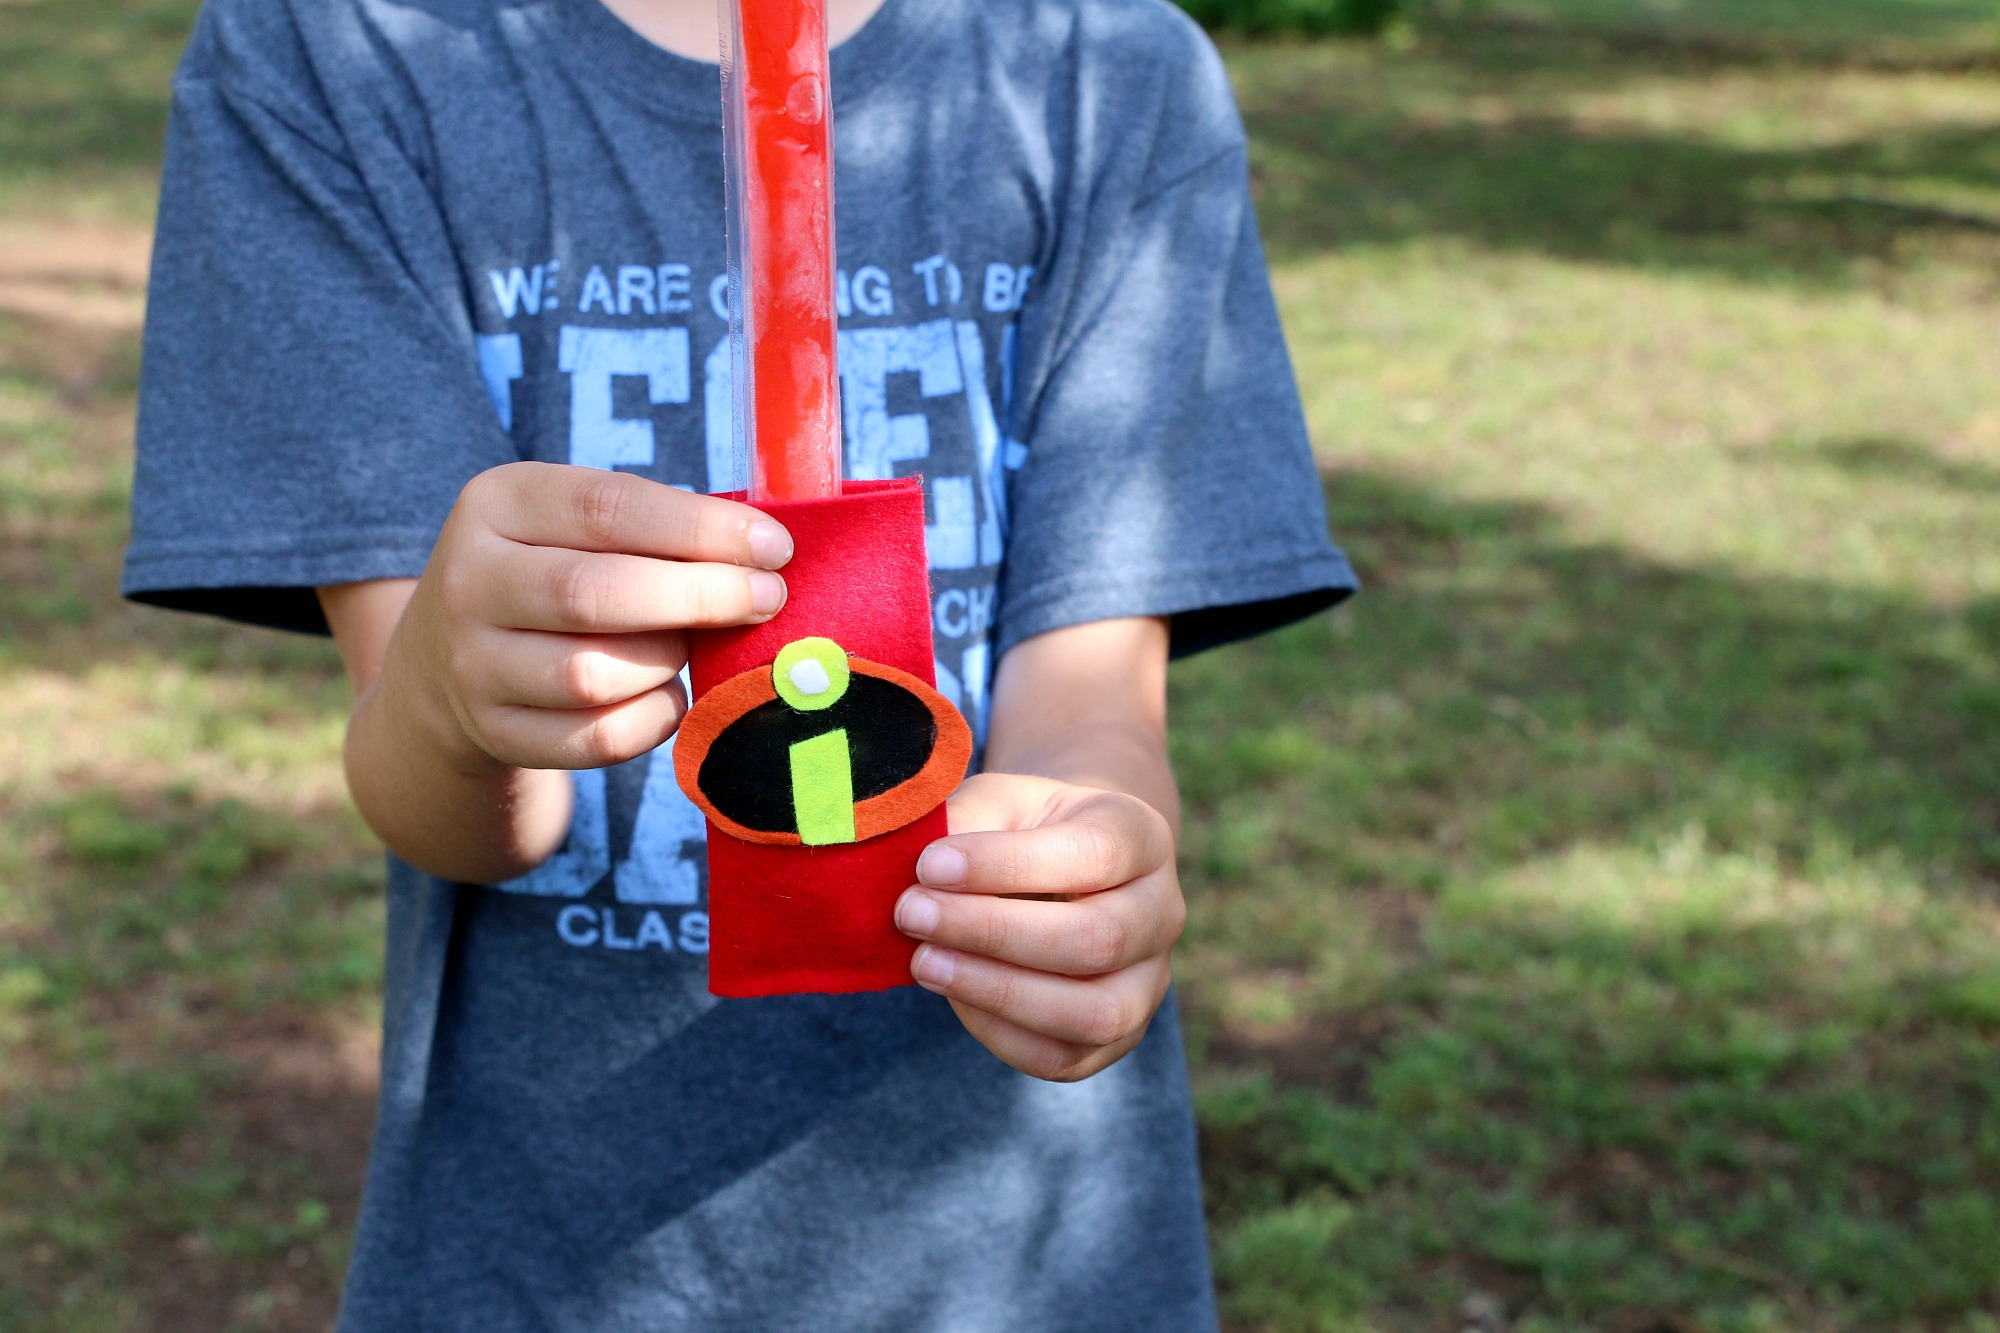 Noah holding his Incredibles popsicle